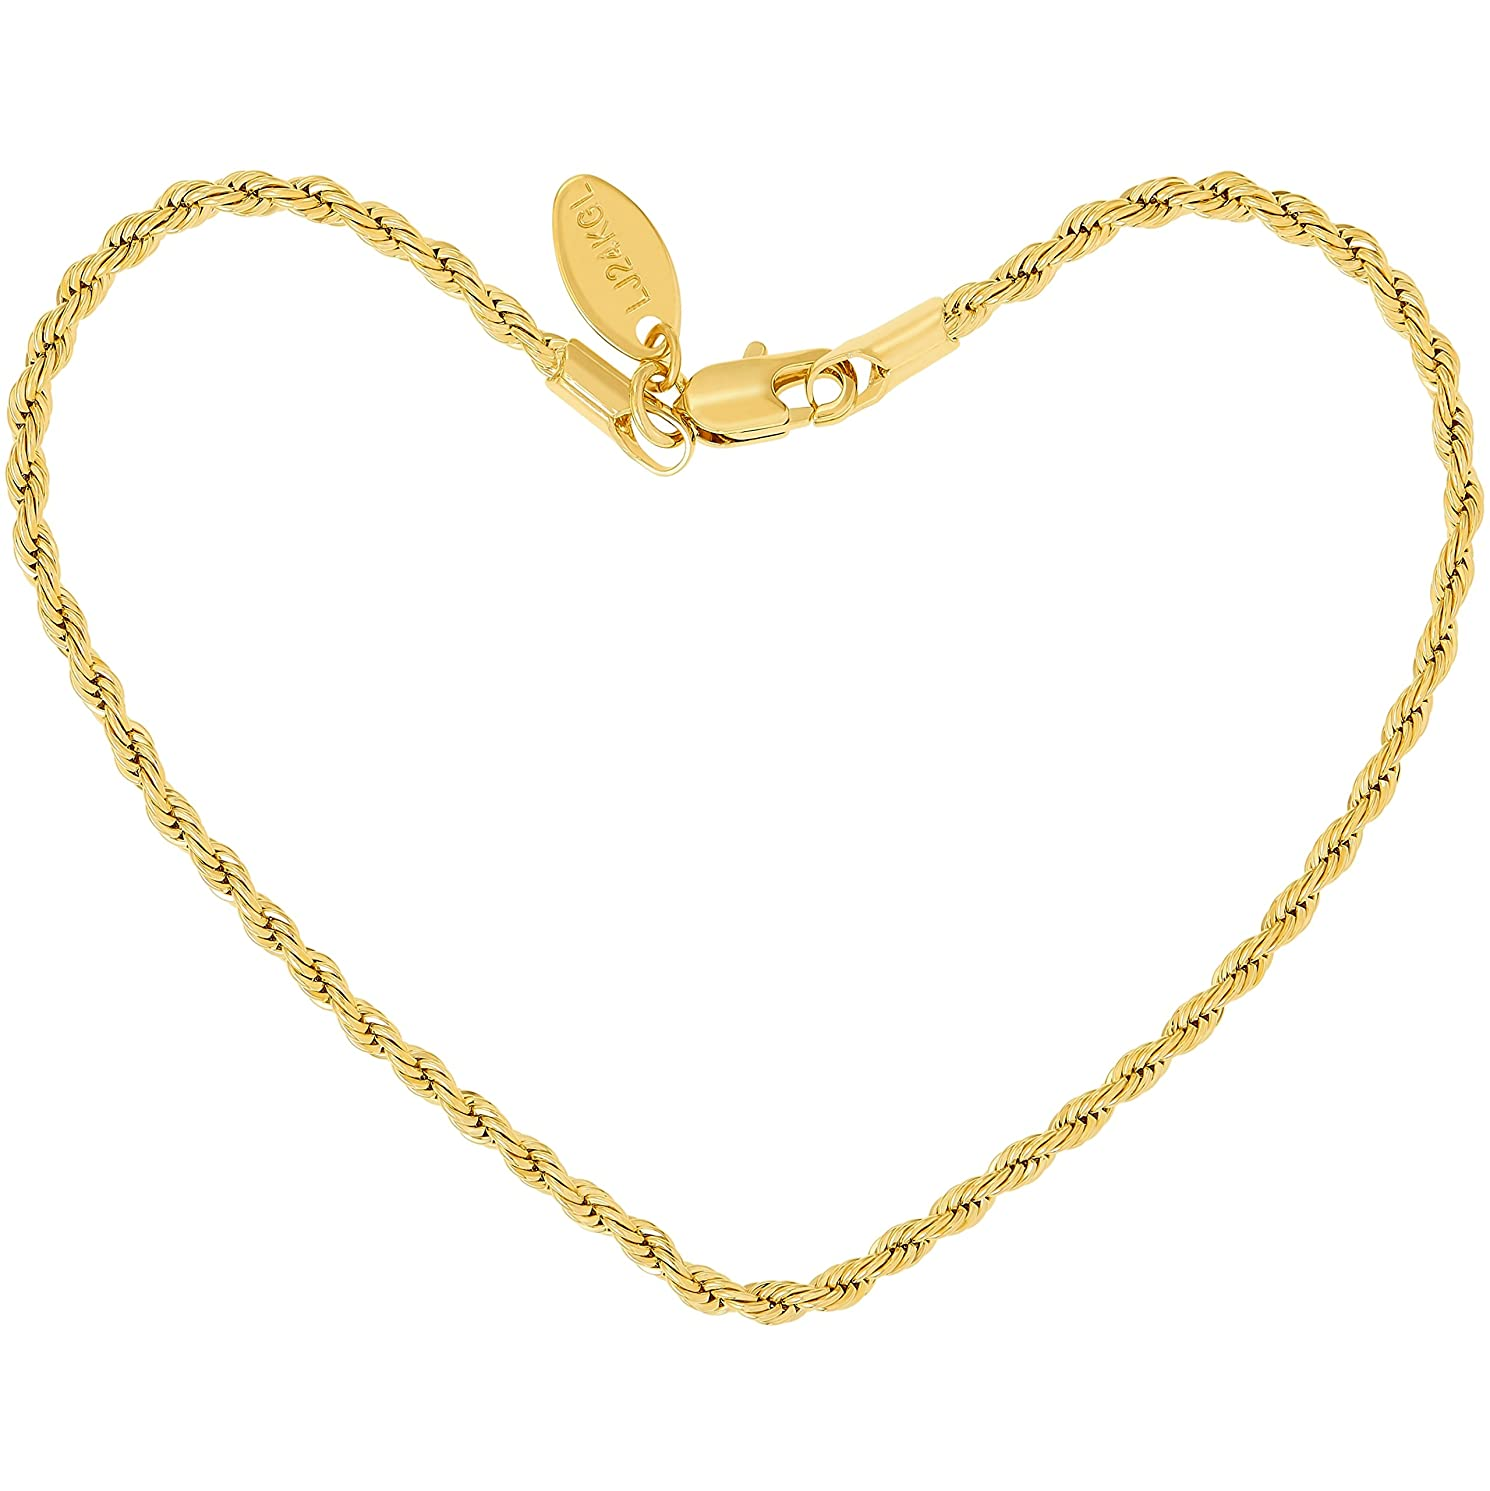 Lifetime Jewelry Anklets for Women Men and Teen Girls [ 2mm Rope Chain ] Real 24K Gold Plated Ankle Bracelet for Beach, Party or Wedding - Cute Durable Anklet - Yellow Gold 9